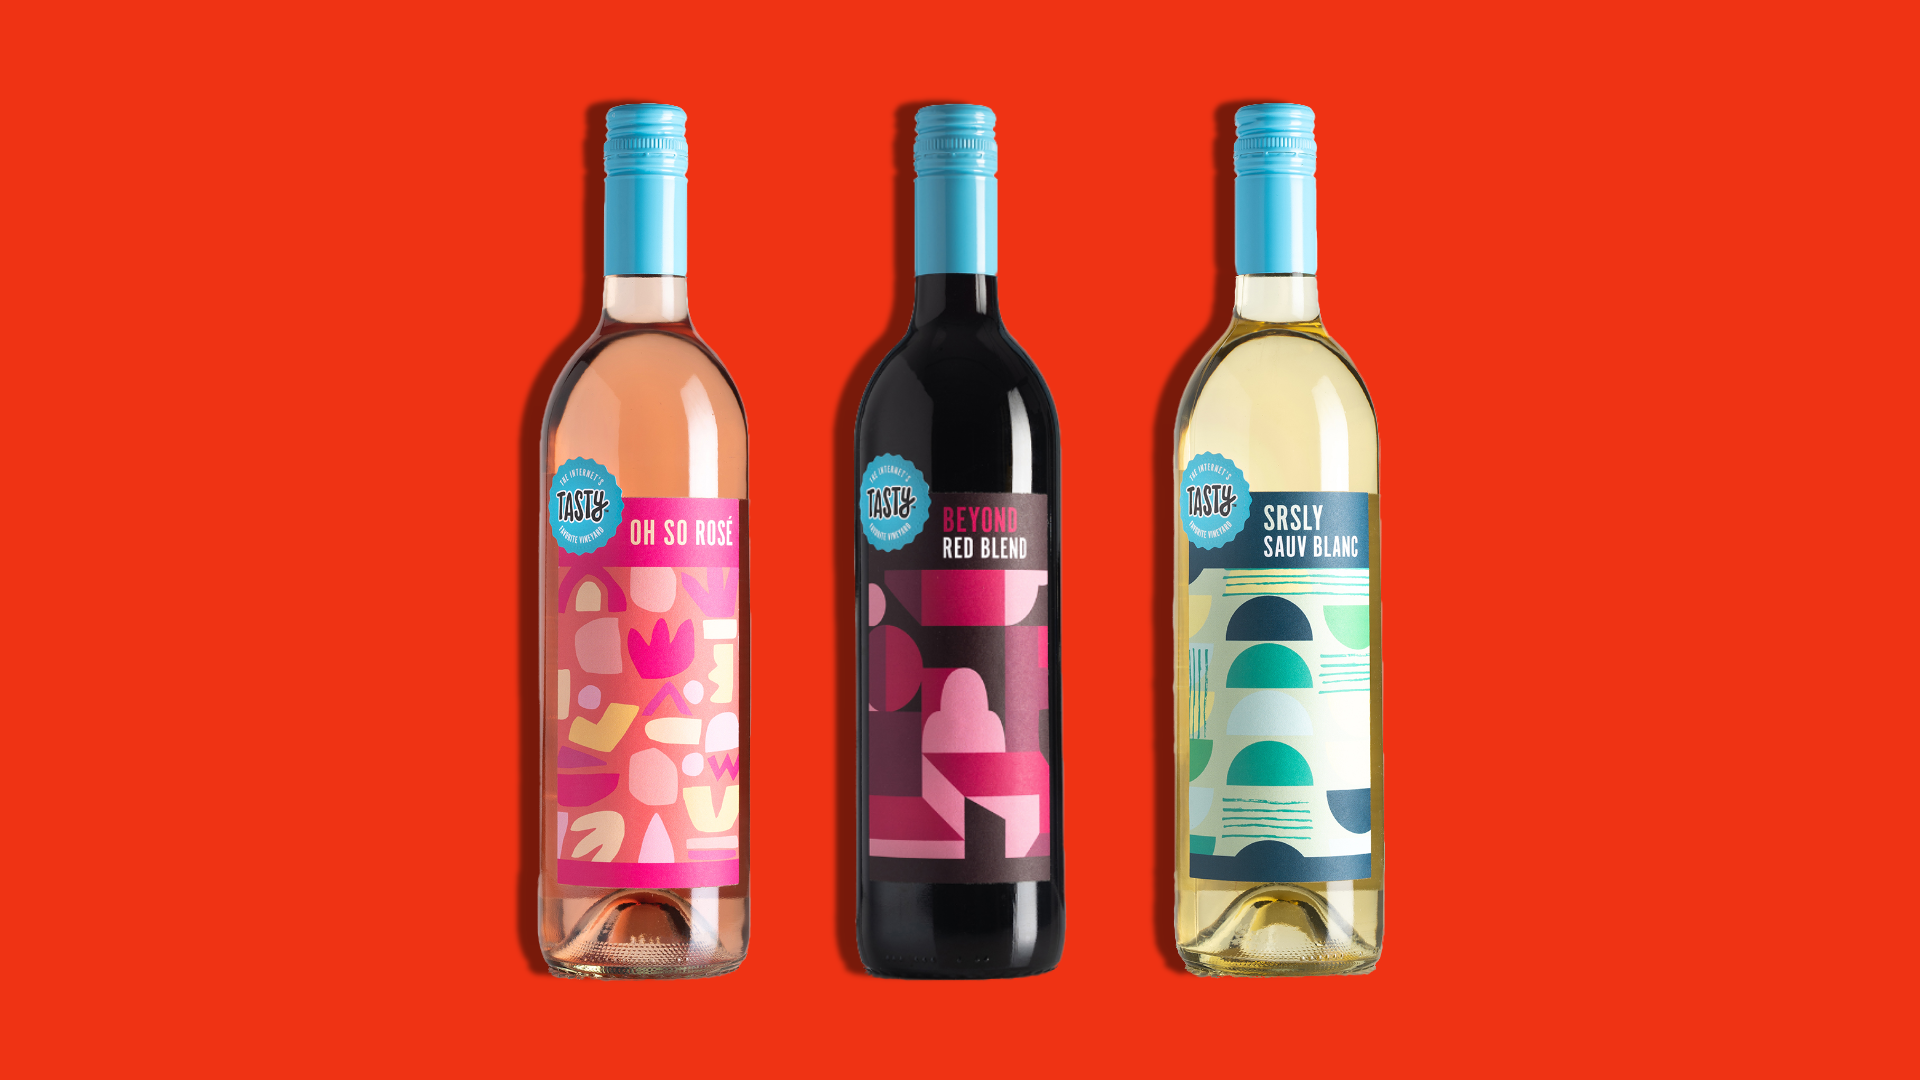 Three bottles of wine on a red background.